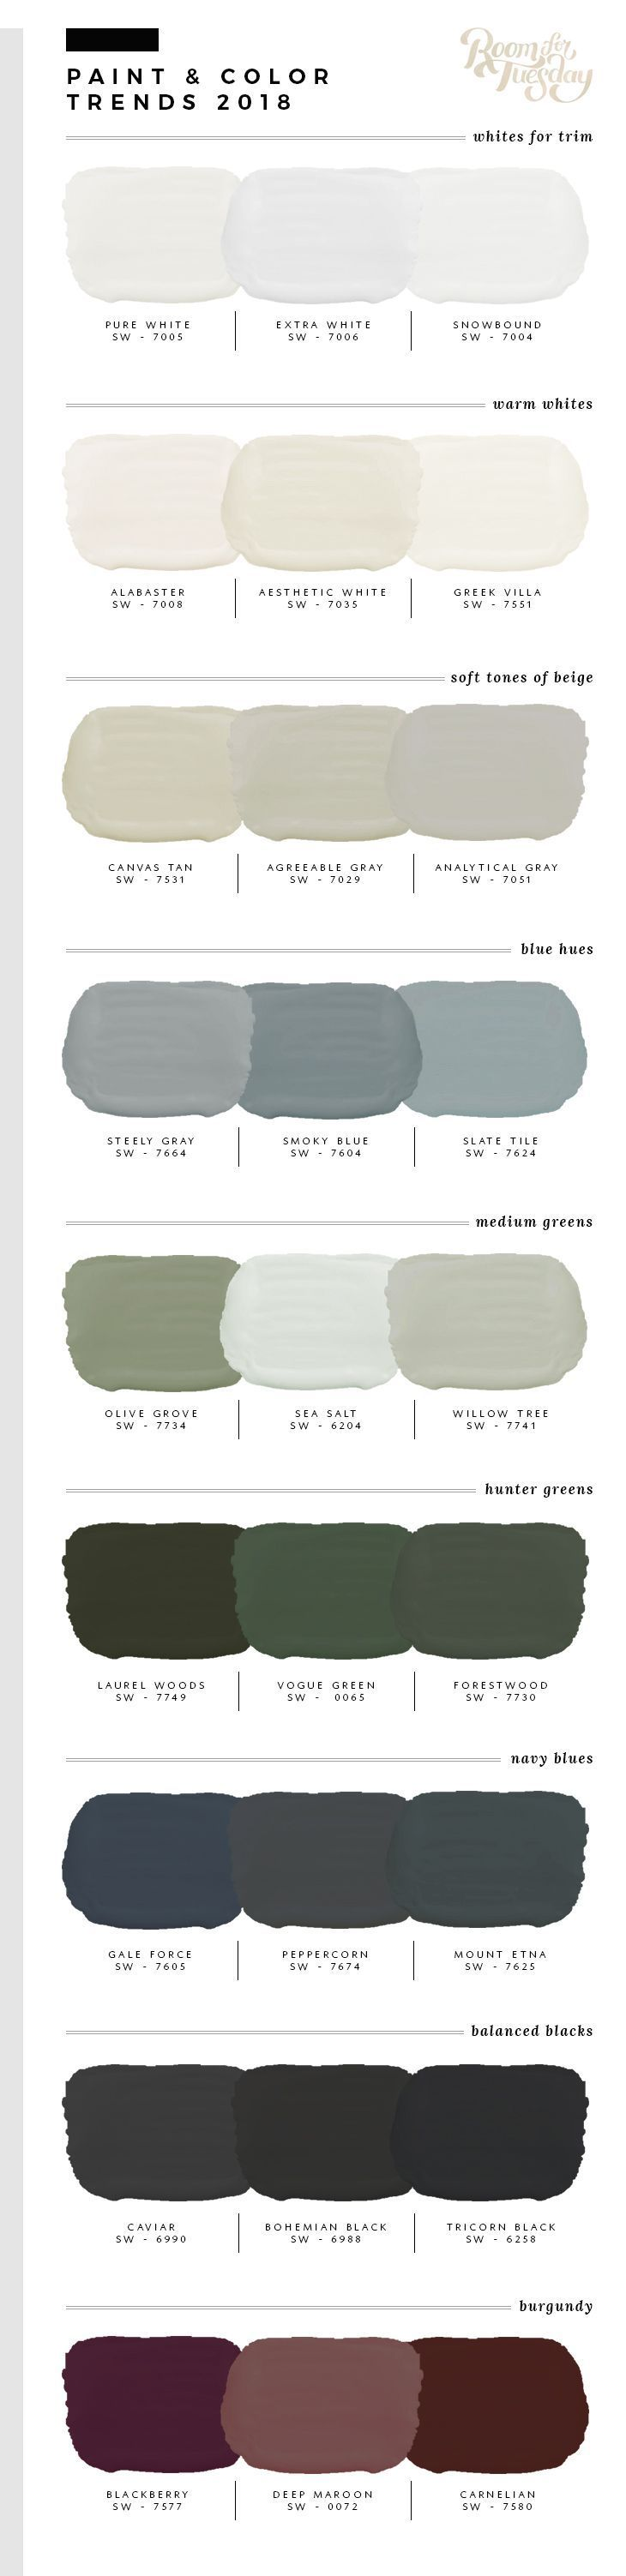 best house images on pinterest color palettes bedrooms and